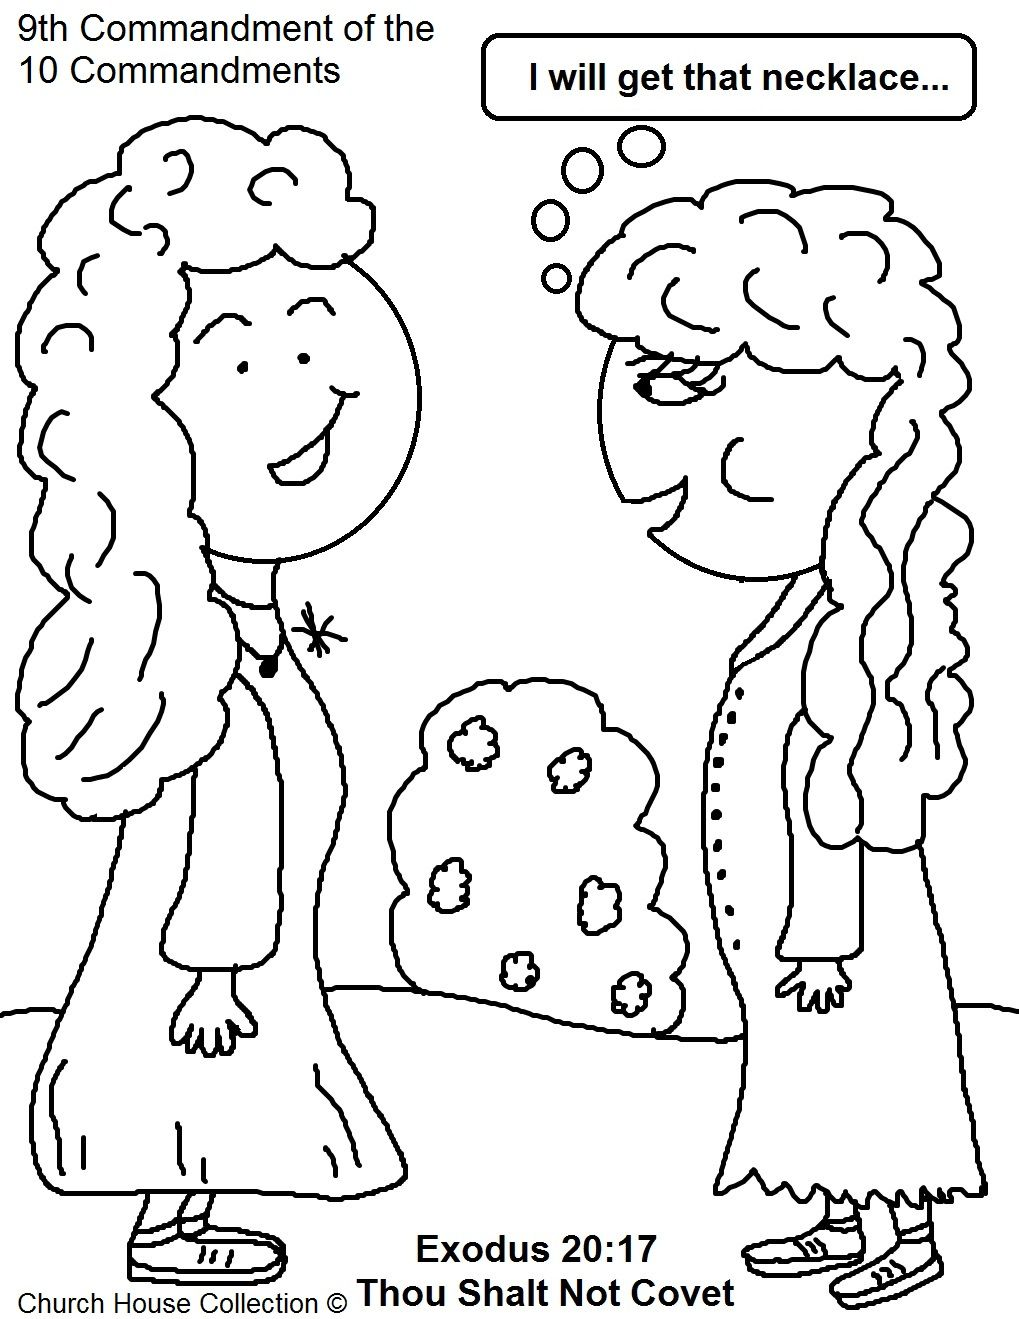 Thou Shalt Not Covet Coloring Page For Ten Commandments Kids